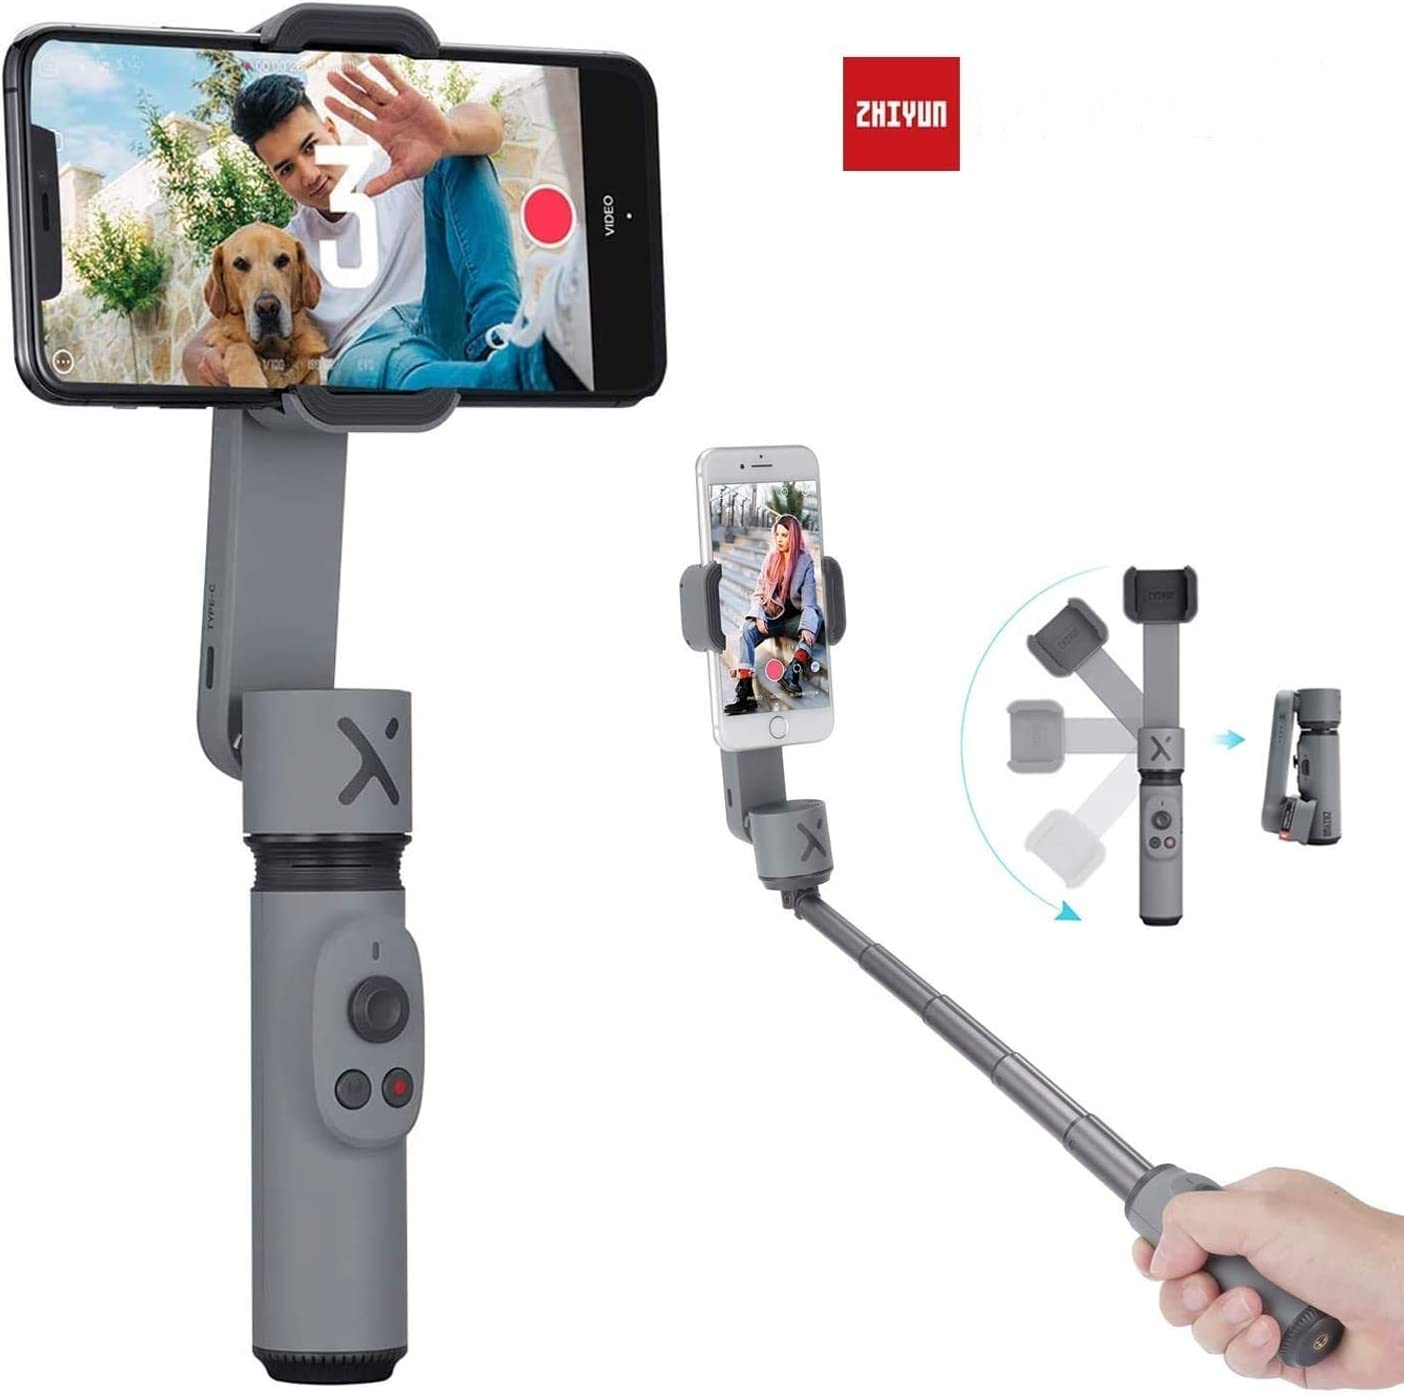 Zhiyun Smooth X 2-Axis Gimbal Stabilizer for iPhone 11 Pro Xs Max Xr X 8 Plus 7 6 SE Android Smartphone Samsung Galaxy Huawei Vivo Mobile Phone Handheld Selfie Stick Gimbal SmoothX Grey